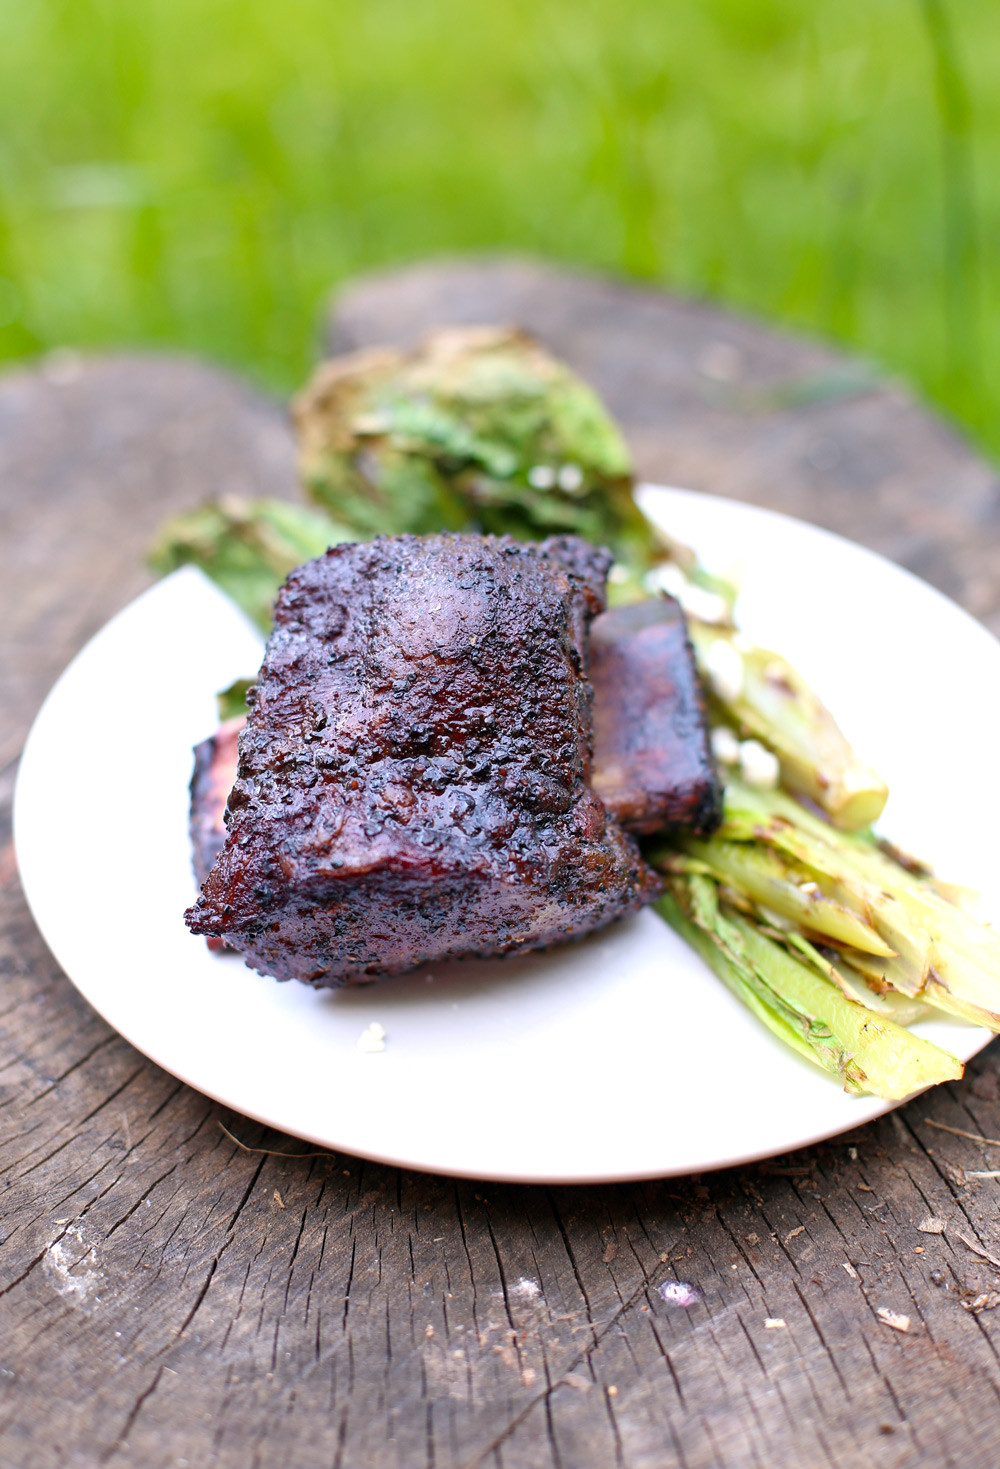 Beef Short Ribs Smoked  Smoked Beef Short Ribs The Ultimate Mother s Day for